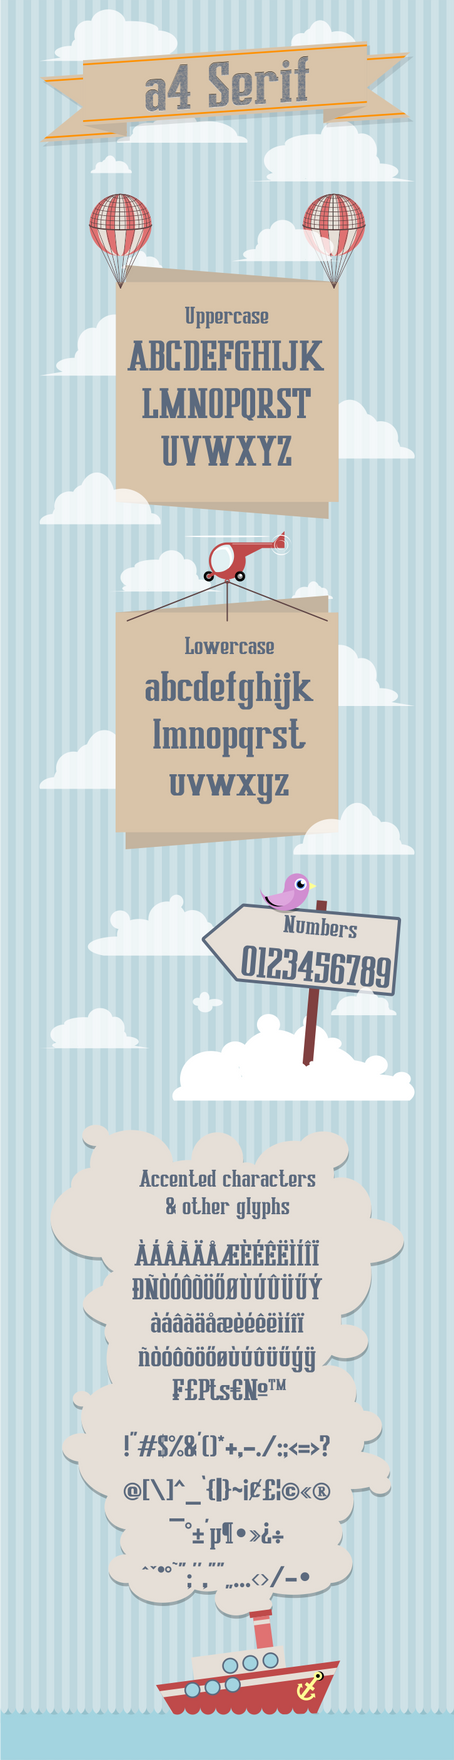 A4 Serif - Free font by anone52